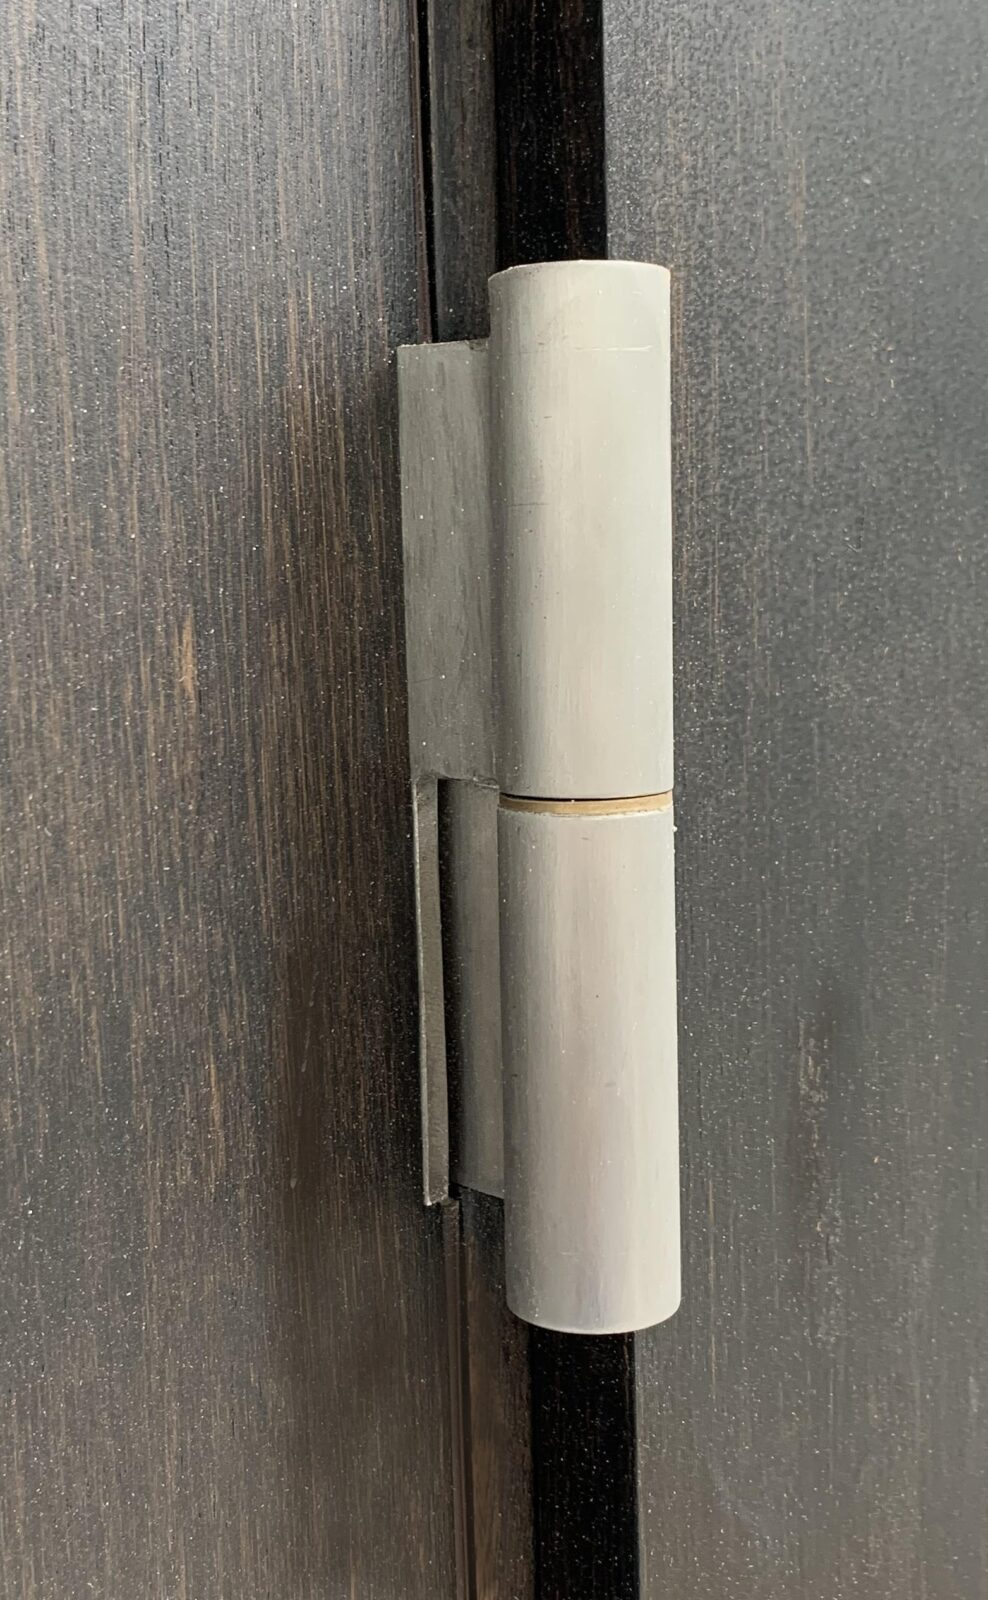 STAINLESS STEEL FRANKFURT BRUSHED HINGE WITHOUT FINIAL